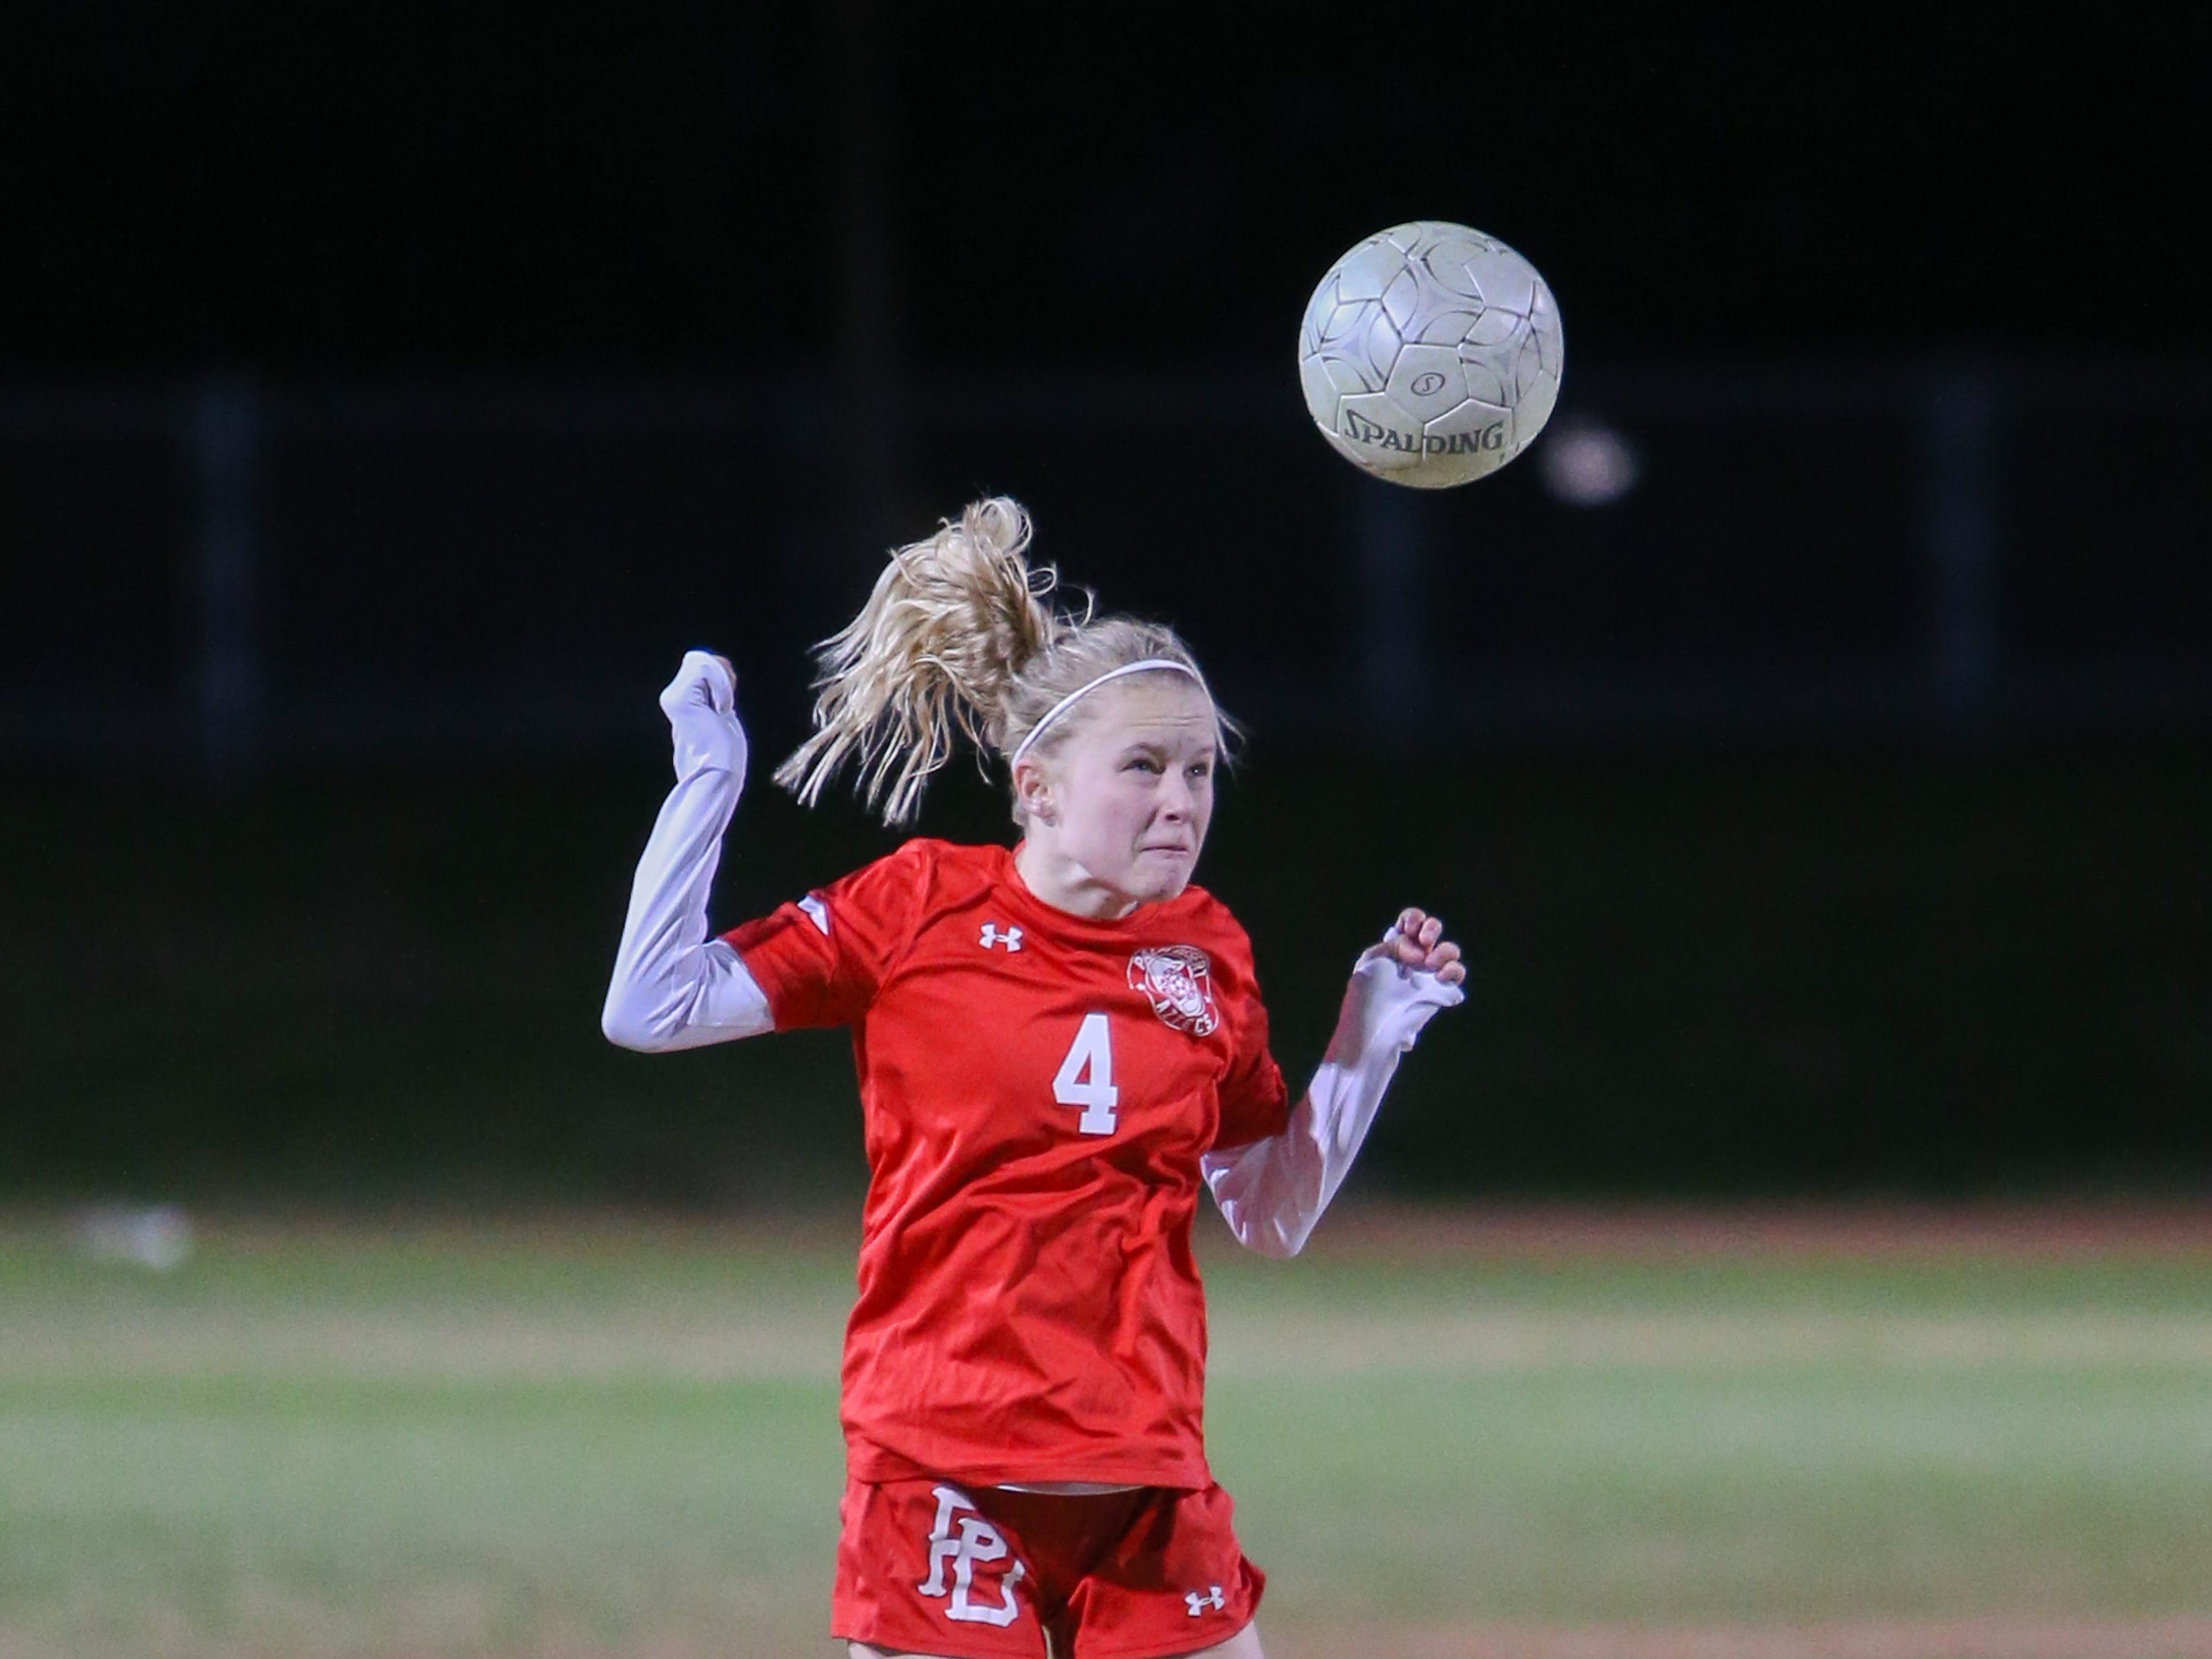 Julia Dore heads the ball. The Palm Desert varsity soccer team won Wednesday's home playoff game against Miller by a score of 5-1.